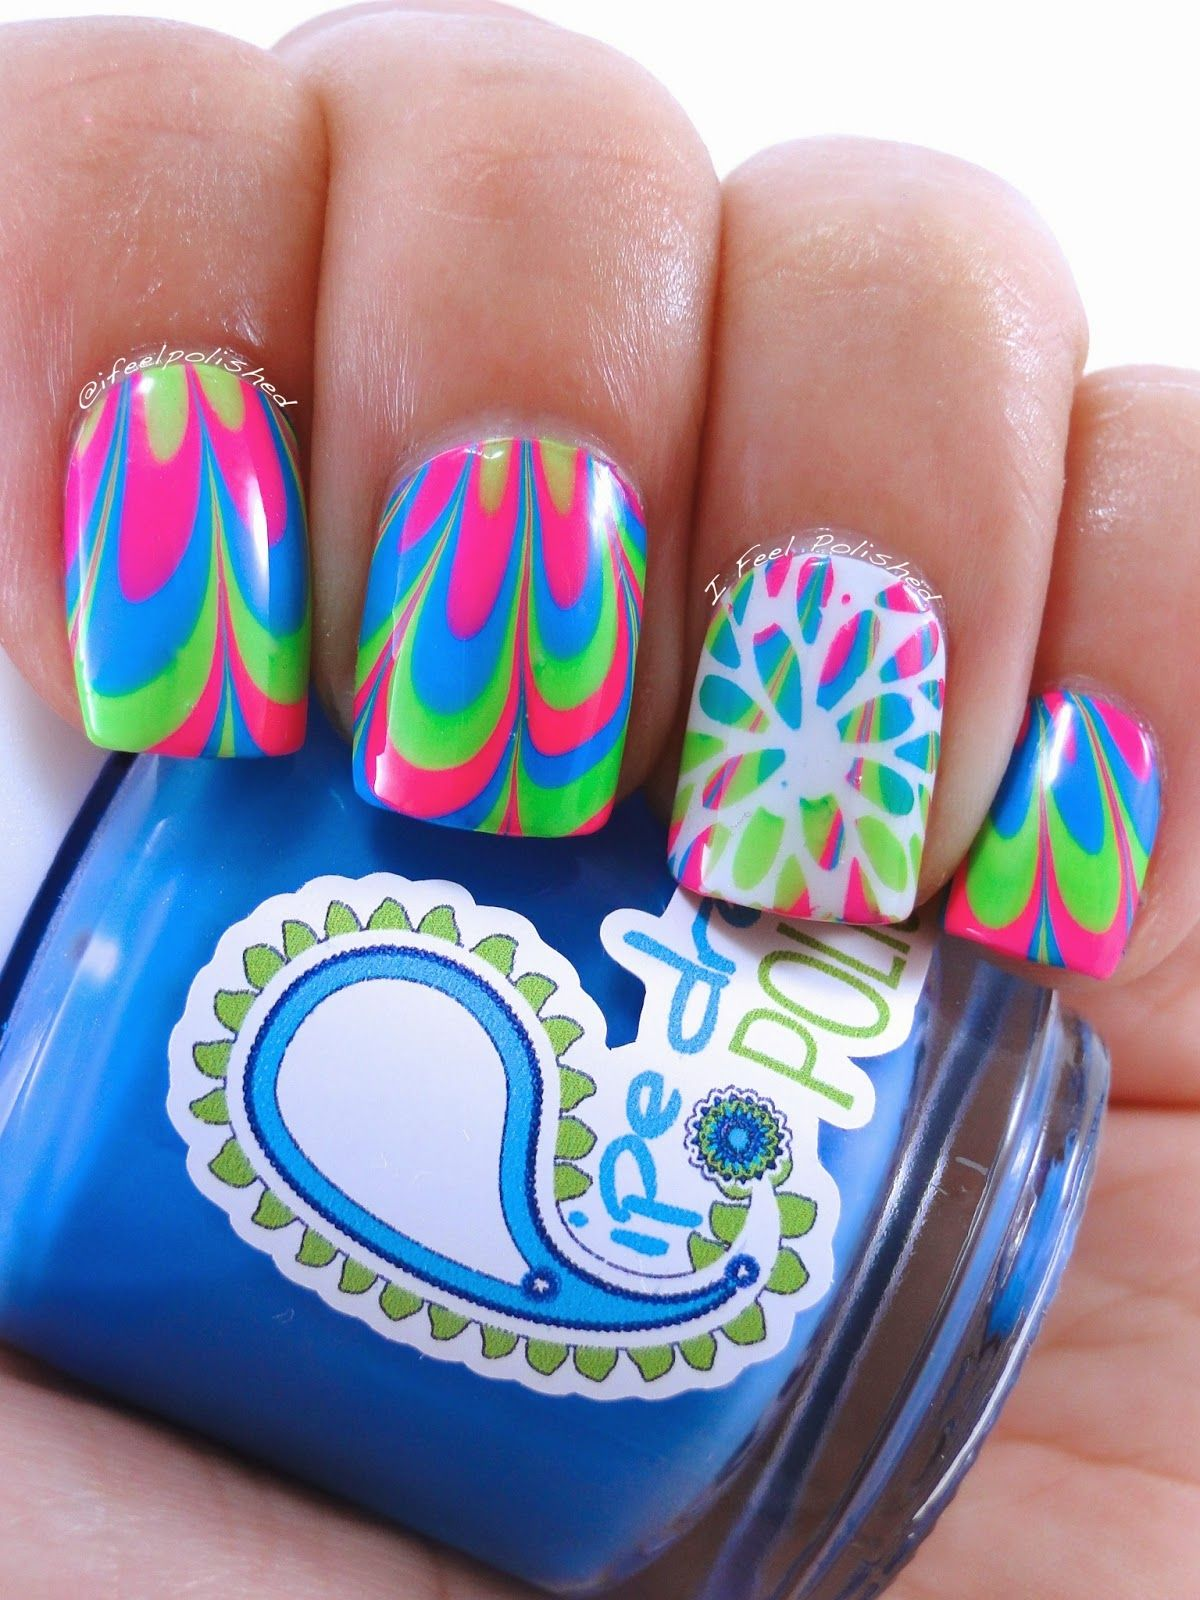 I Feel Polished!: Neon Mum Water Marble | cosmetics and female tools ...